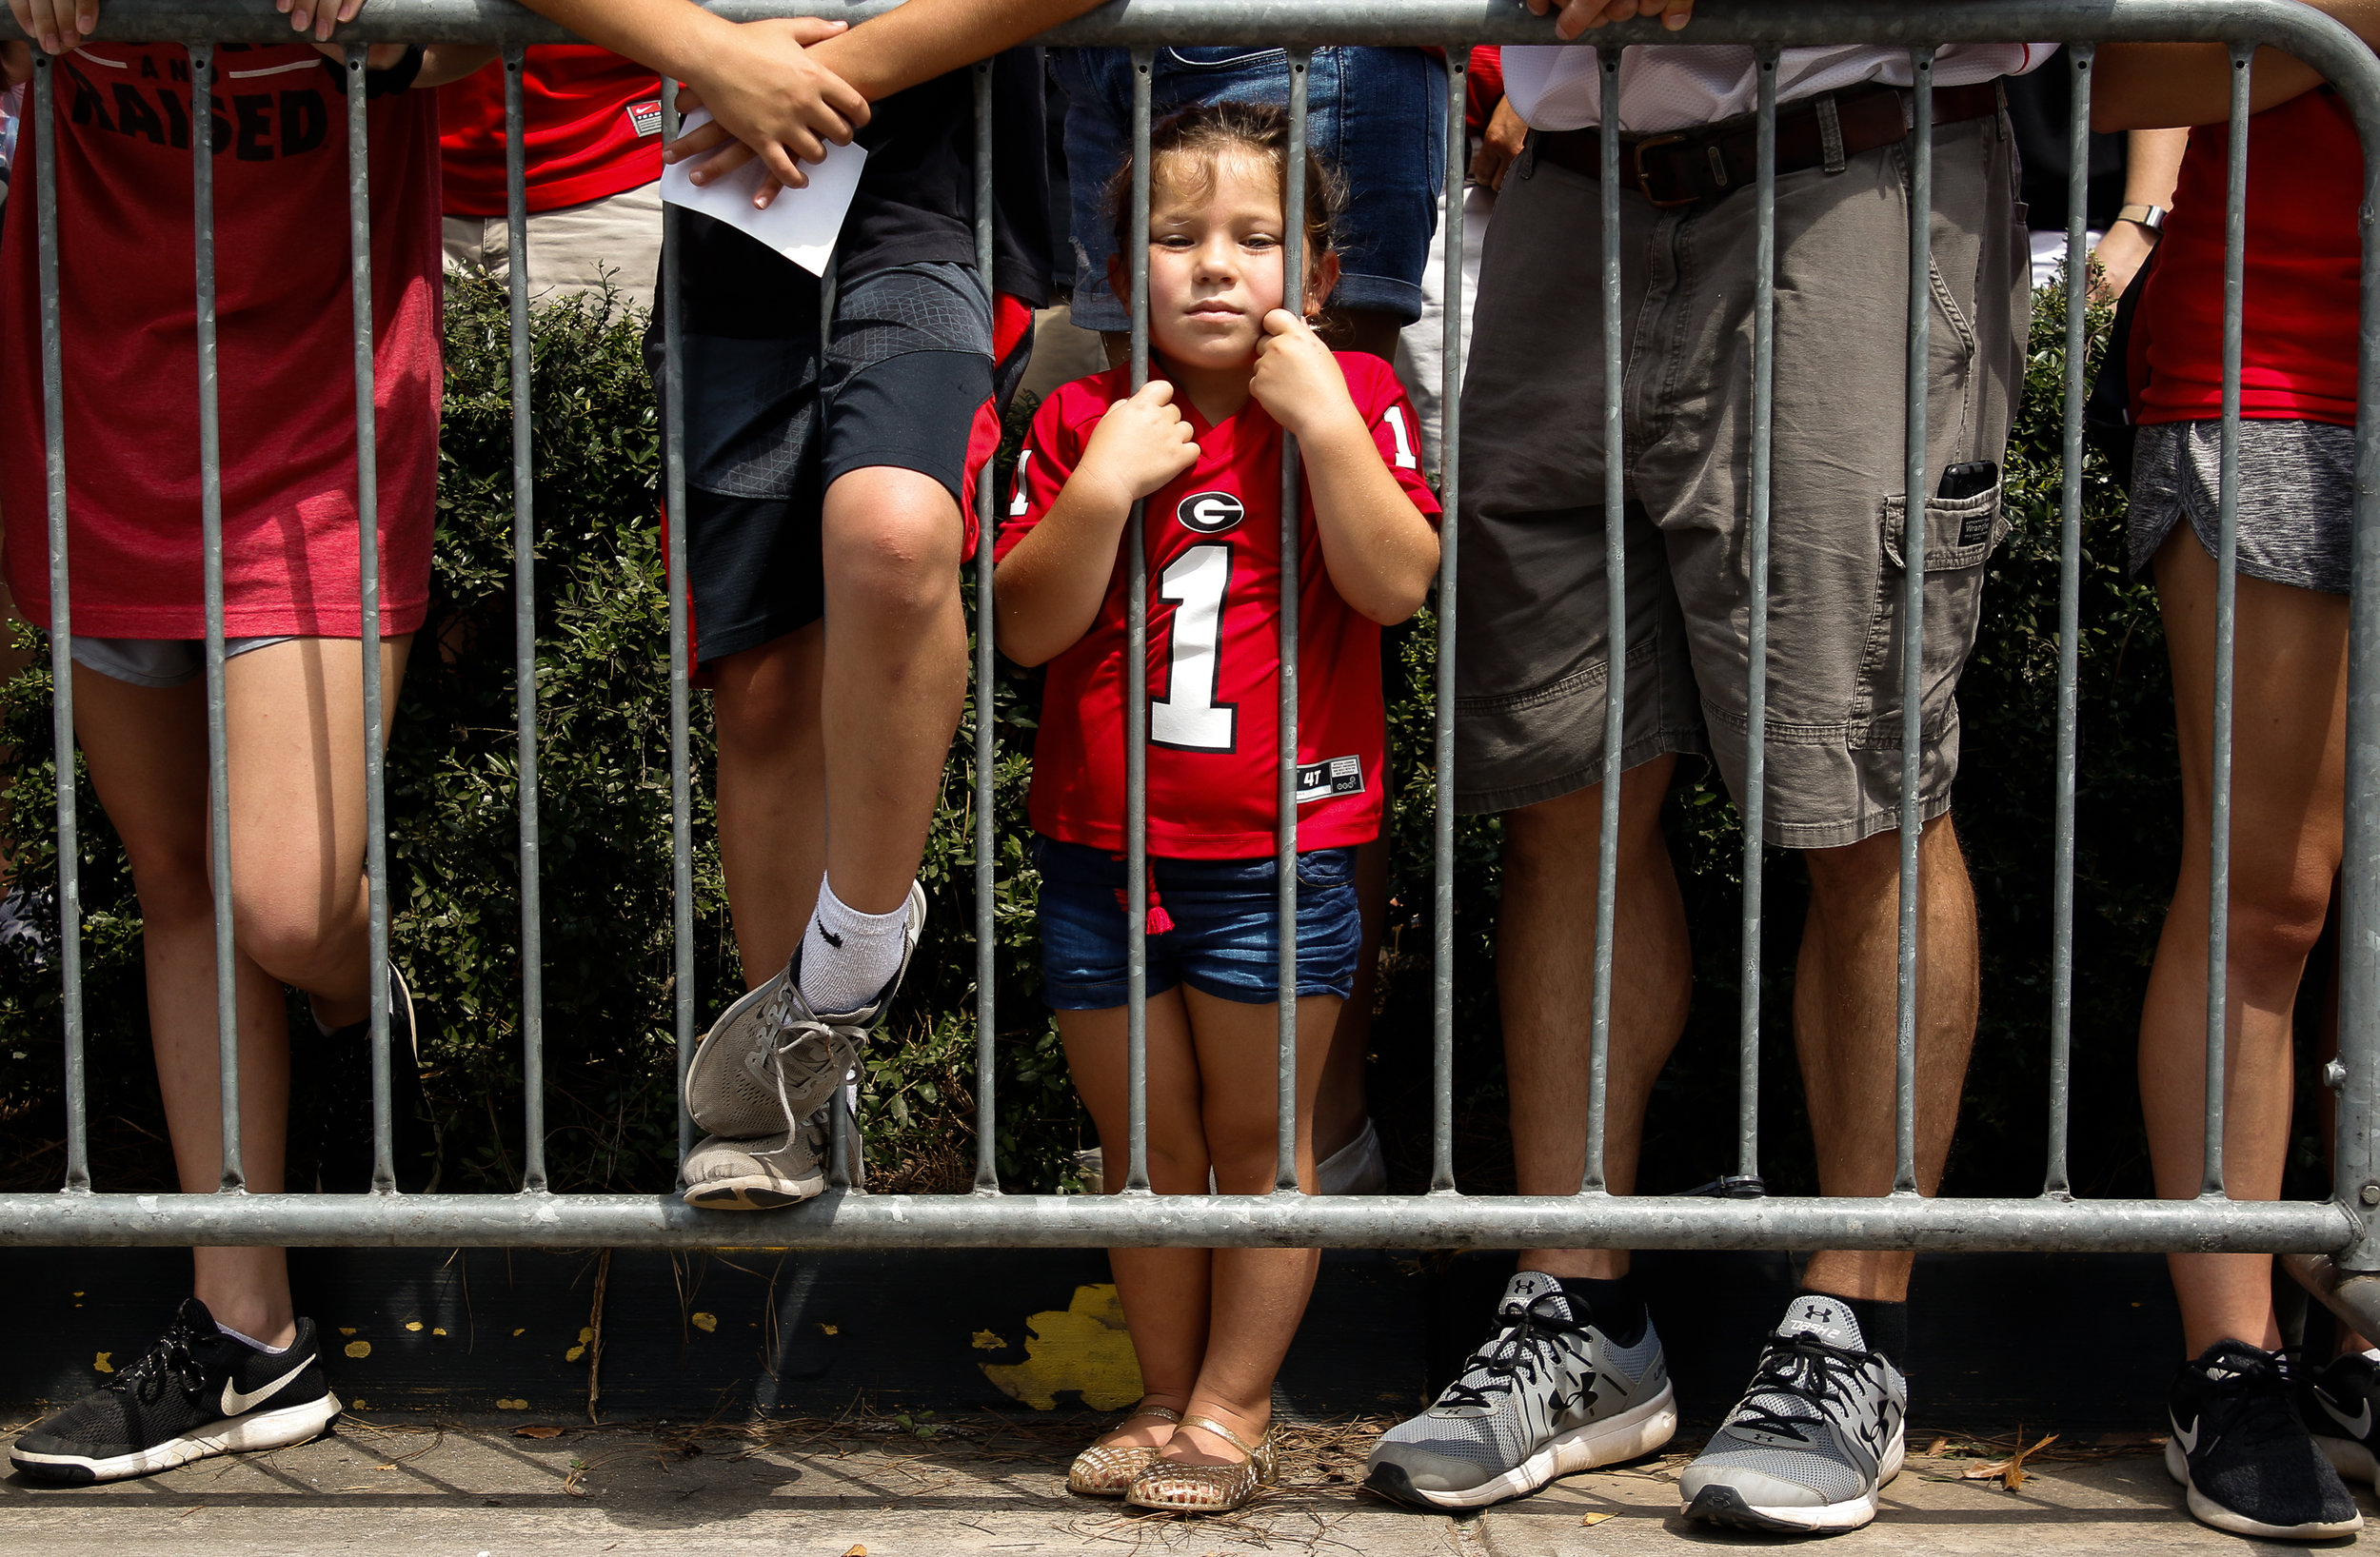 A young fan waits behind the barricade for the University of Georgia football team to arrive for their first Dawg Walk of the 2018 season in Athens, Ga., on Saturday, Sept. 1, 2018.